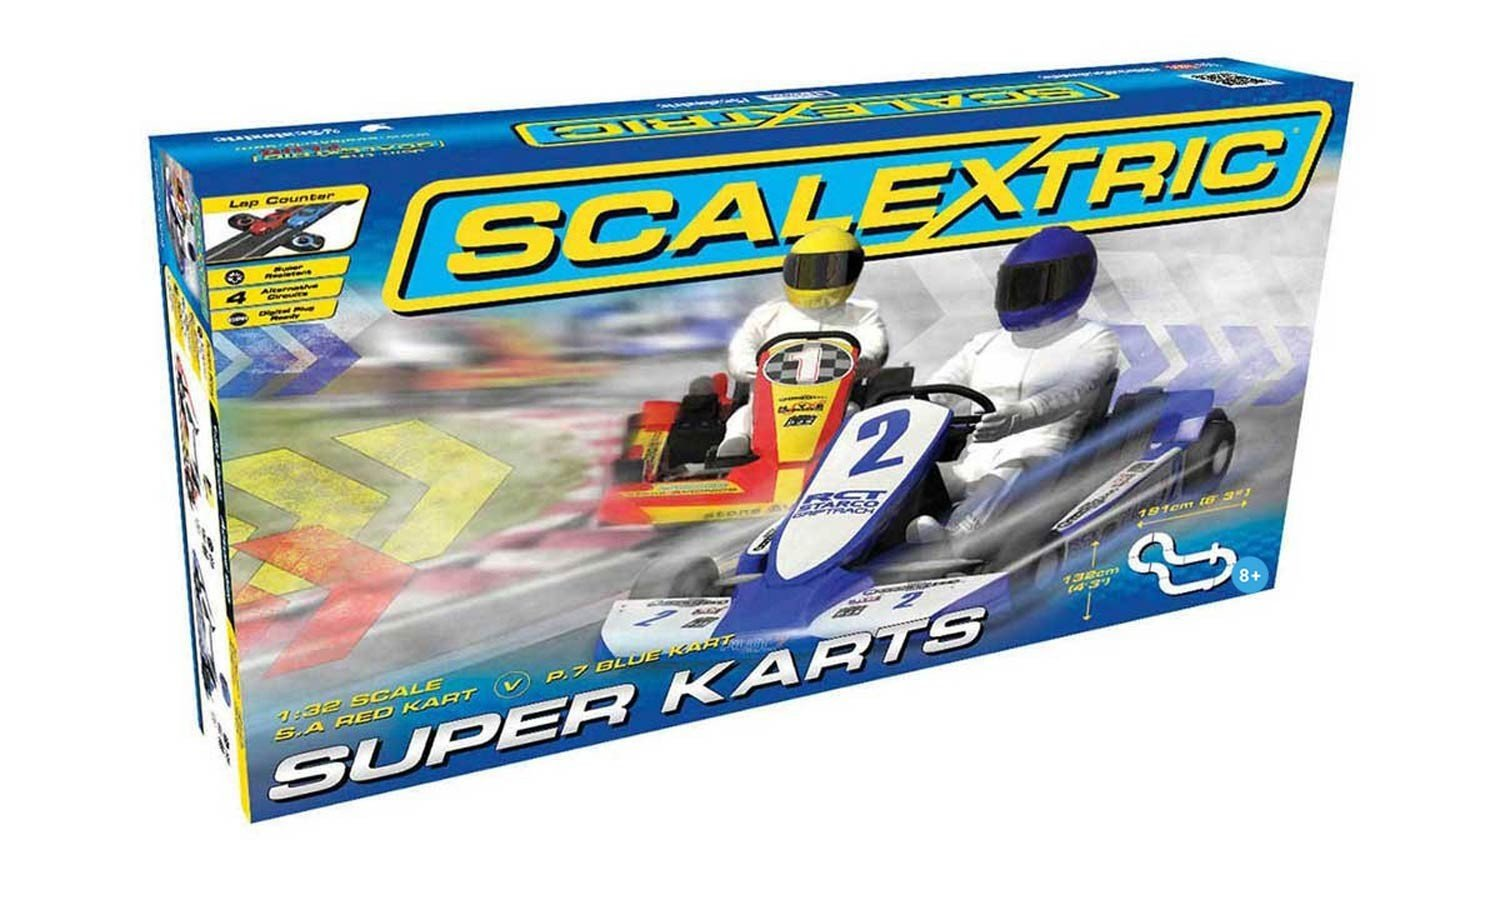 Amazon.com: Scalextric Super Karts 1: 32 Scale Slot Car Playset: Toys & Games